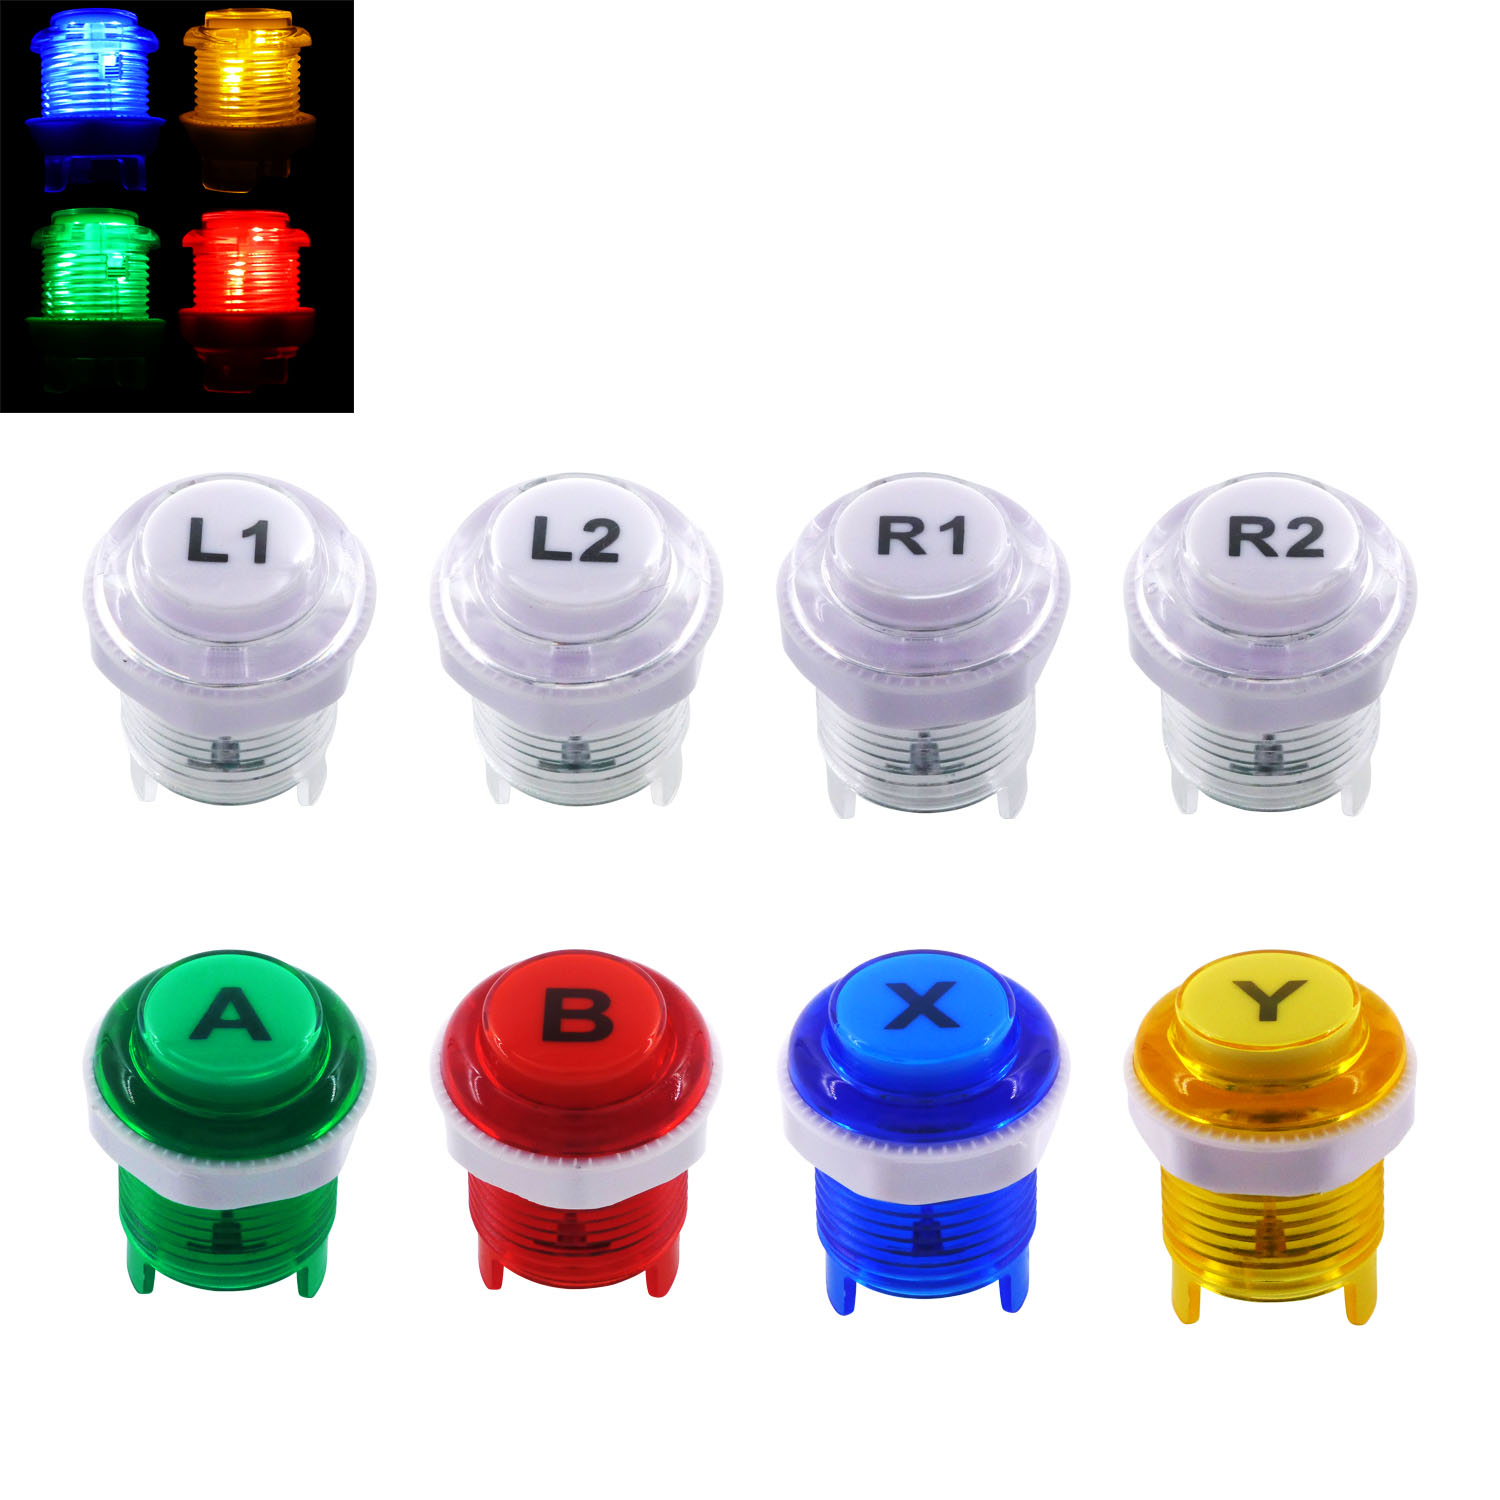 SJ@JX 8 PCS Arcade Game LED Push Buttons with Cherry MX Microswitch Logo X Y Start Select for PC MAME Raspberry Pi